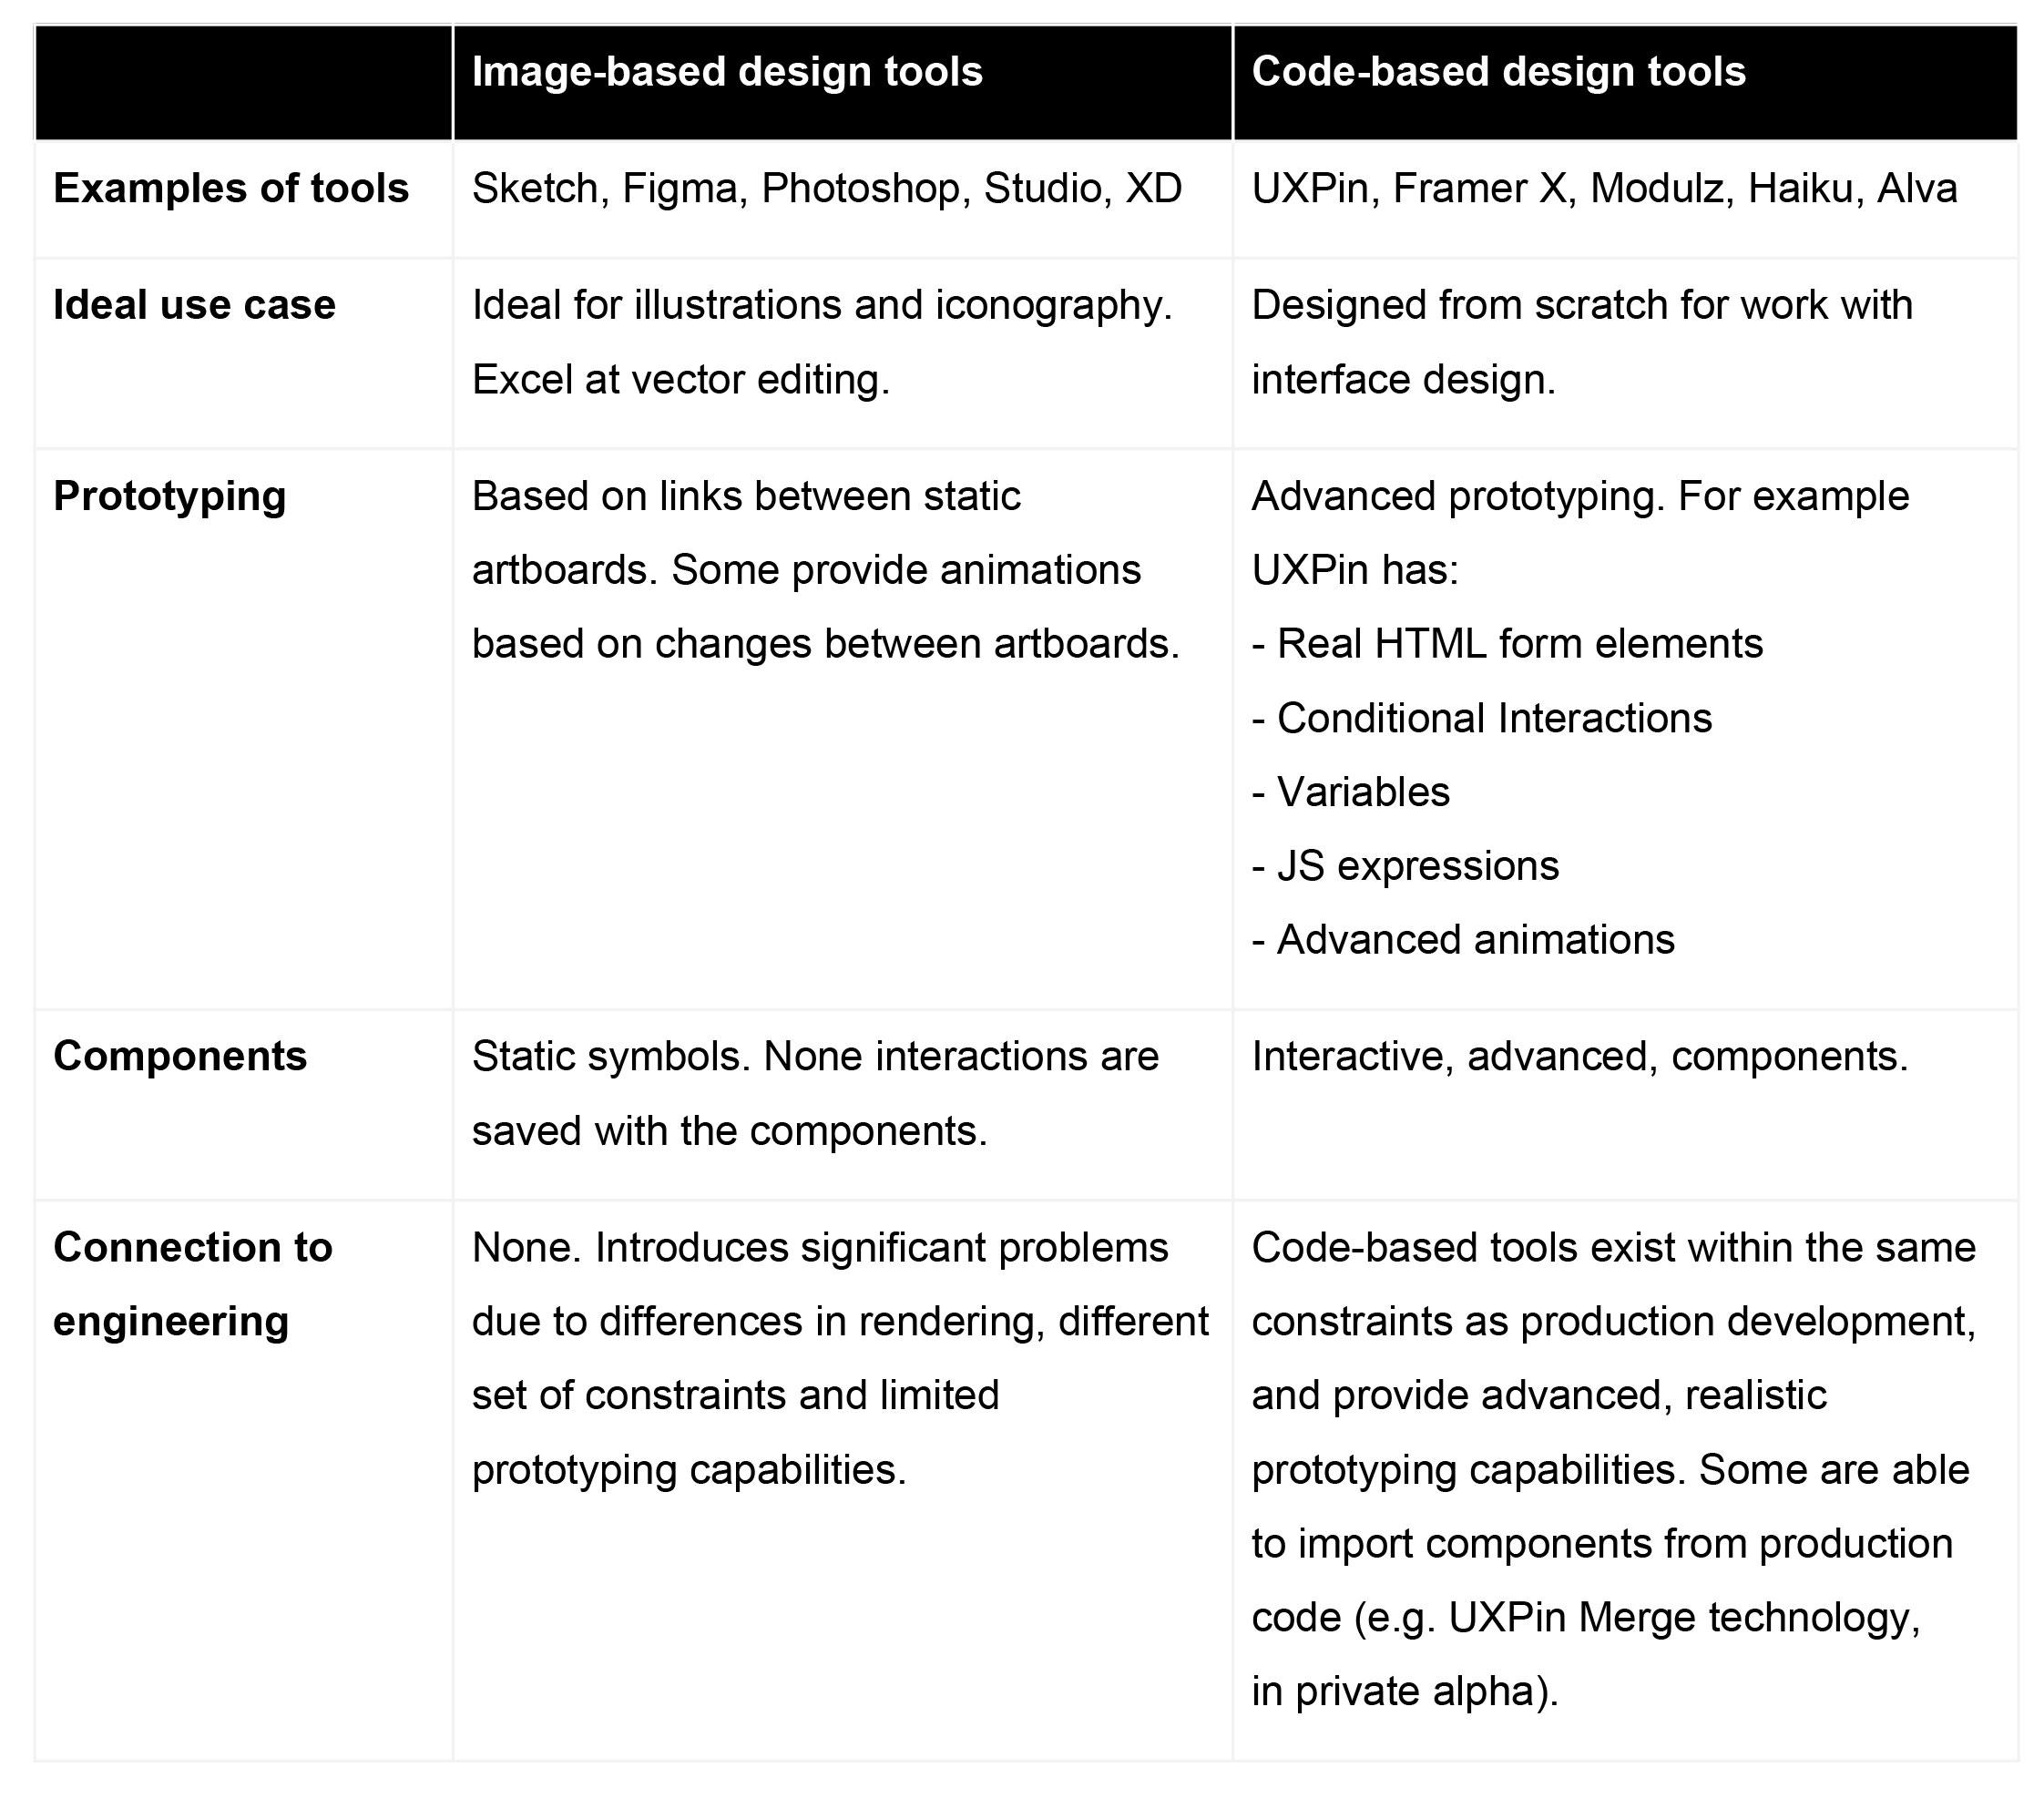 Two paradigms of design tools (click the icon in the top right to enlarge)